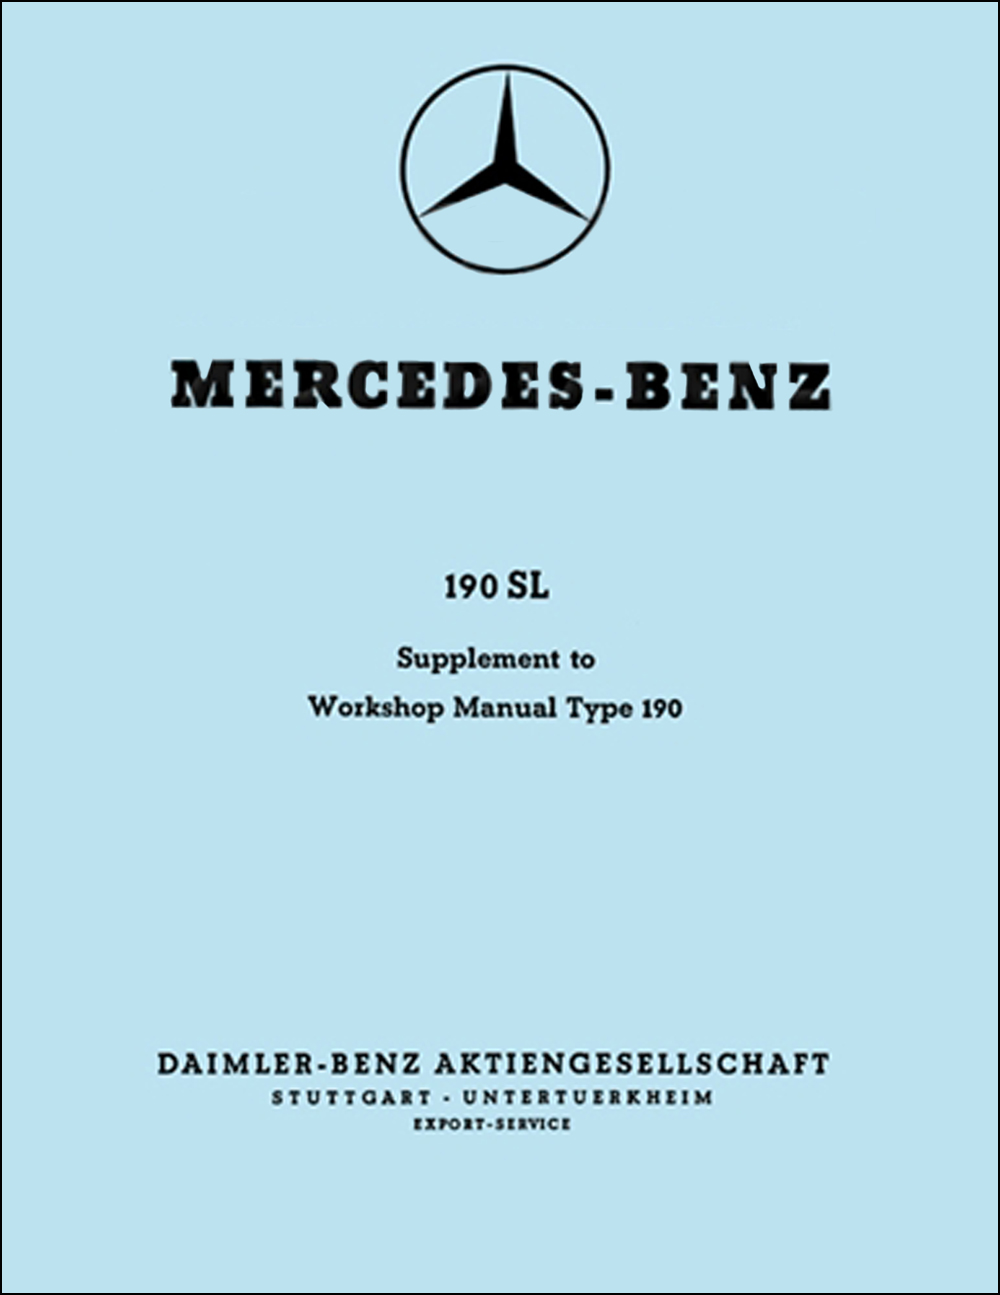 1955-63 Mercedes 190SL Workshop Manual Supplement